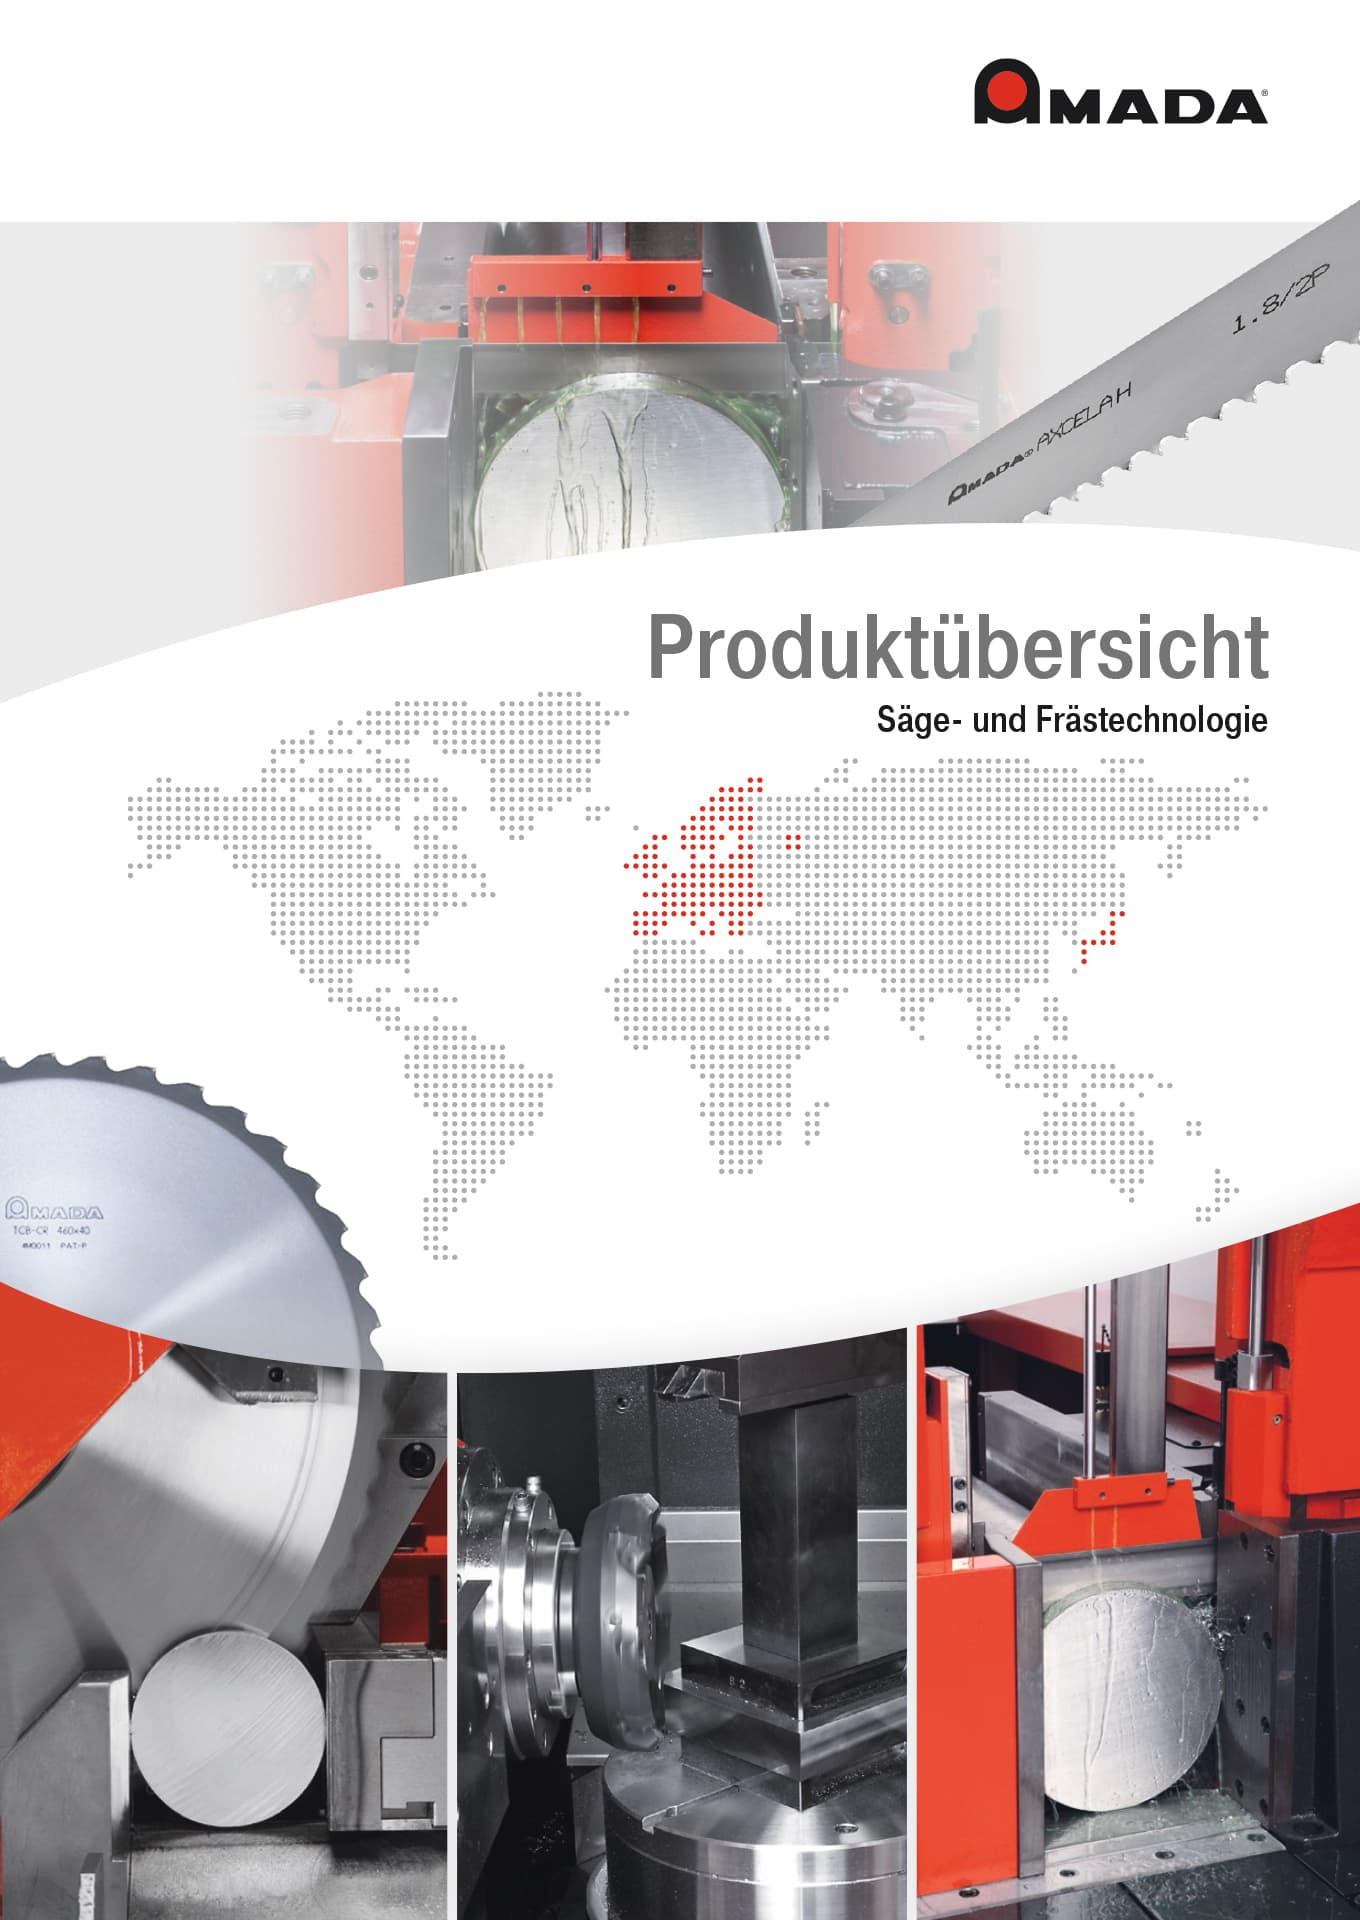 PDF-Vorschau Amada Machine Tools Europe Produktkatalog (deutsch)